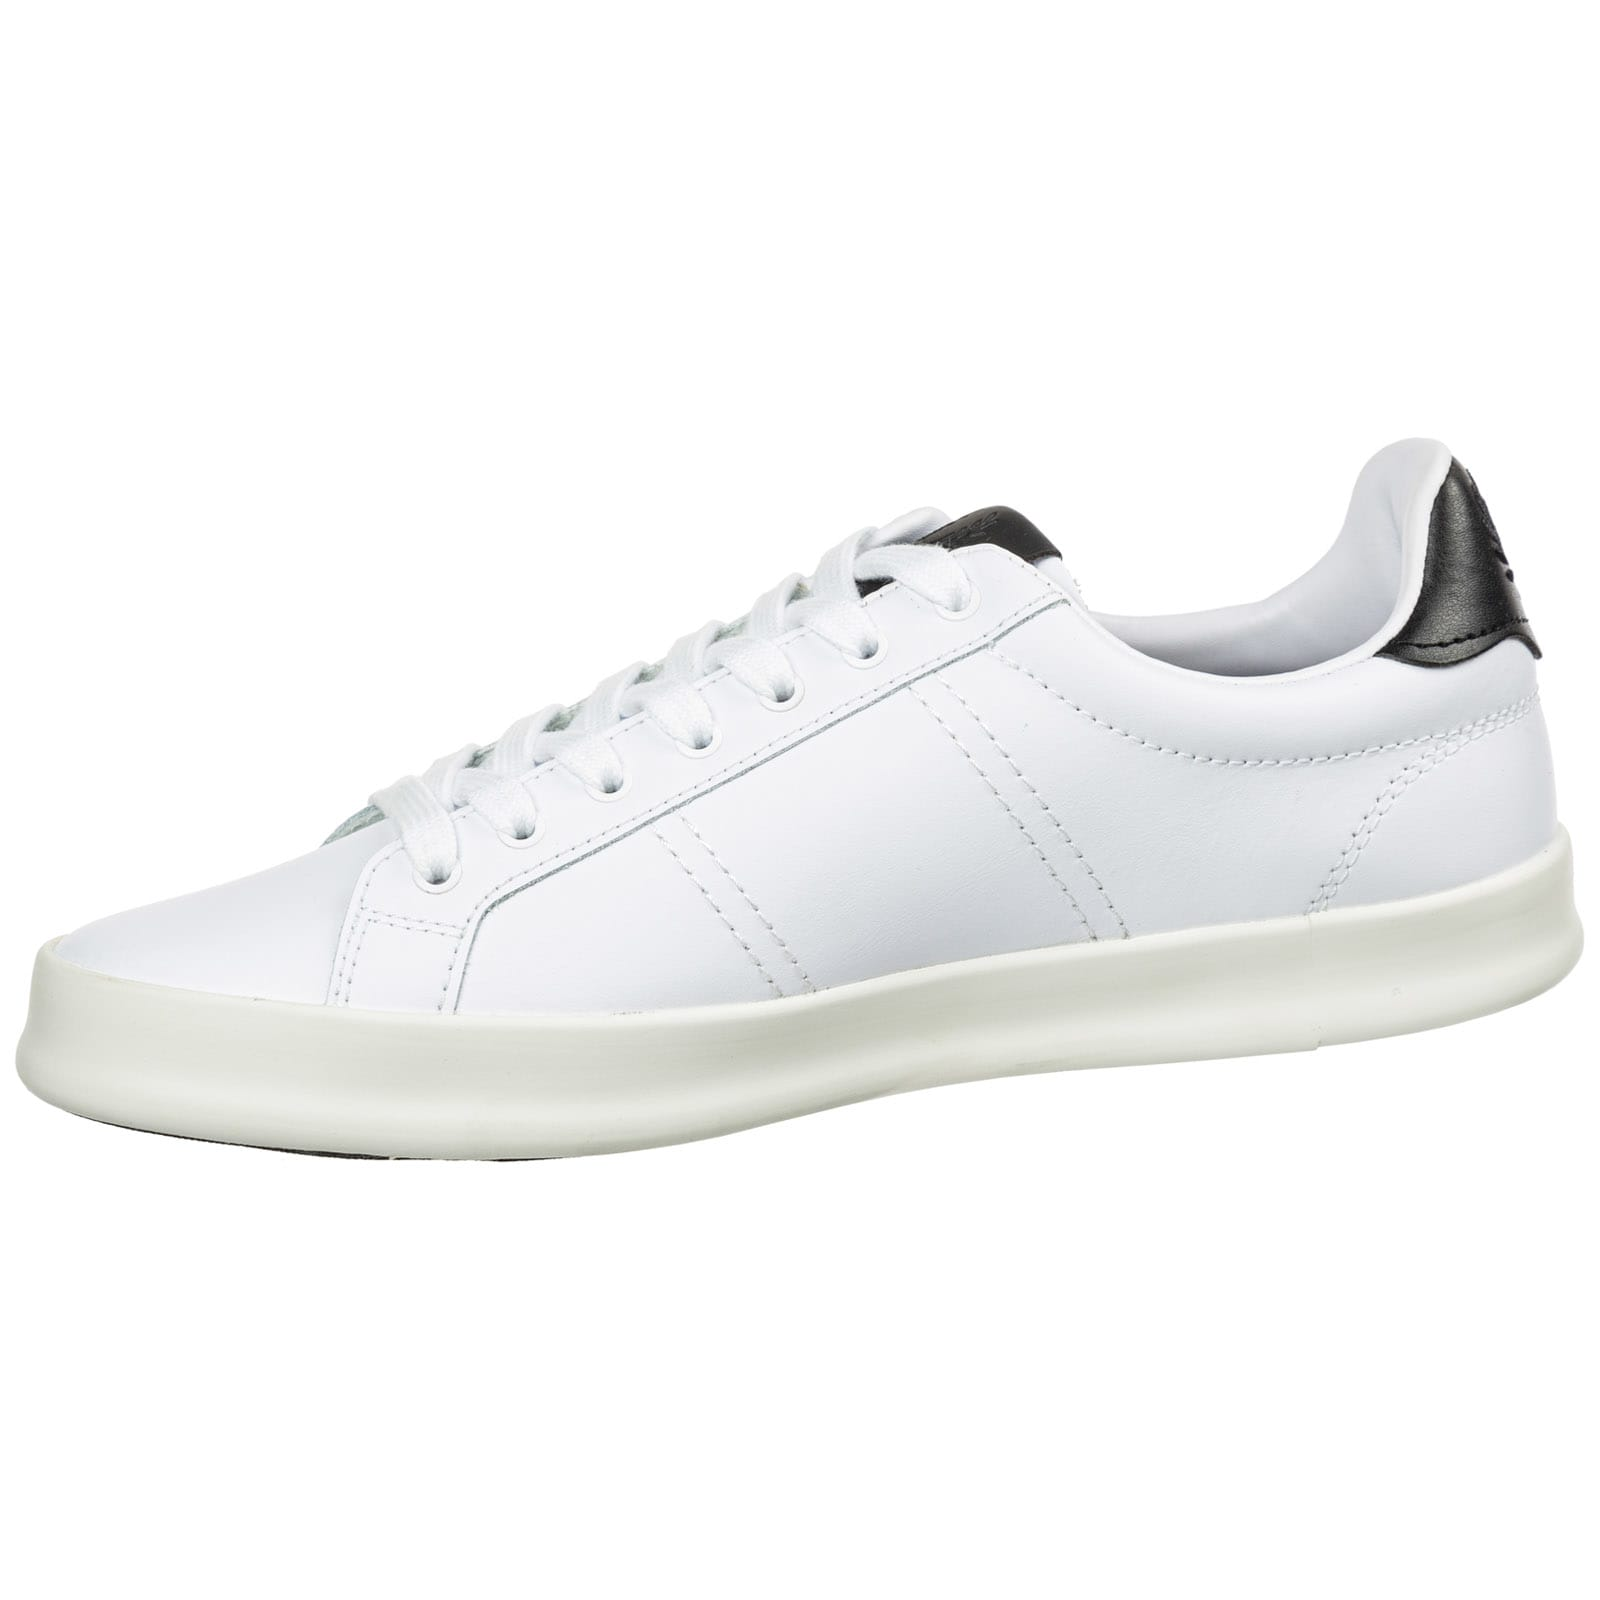 Fred Perry Fred Perry B721 Sneakers Black 11076245   italist